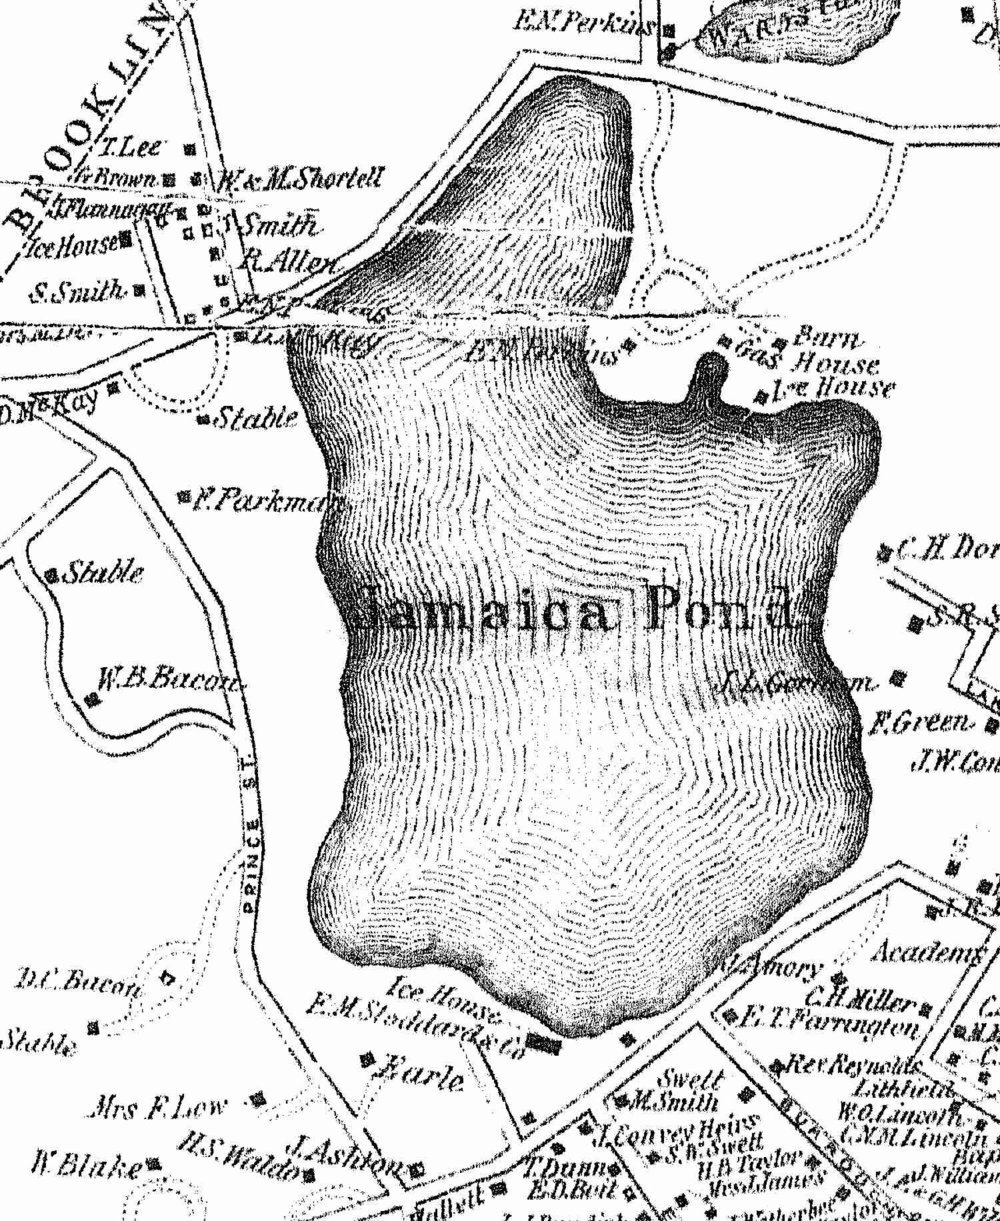 1855 map showing the E.M. Stoddard & Co. ice house.